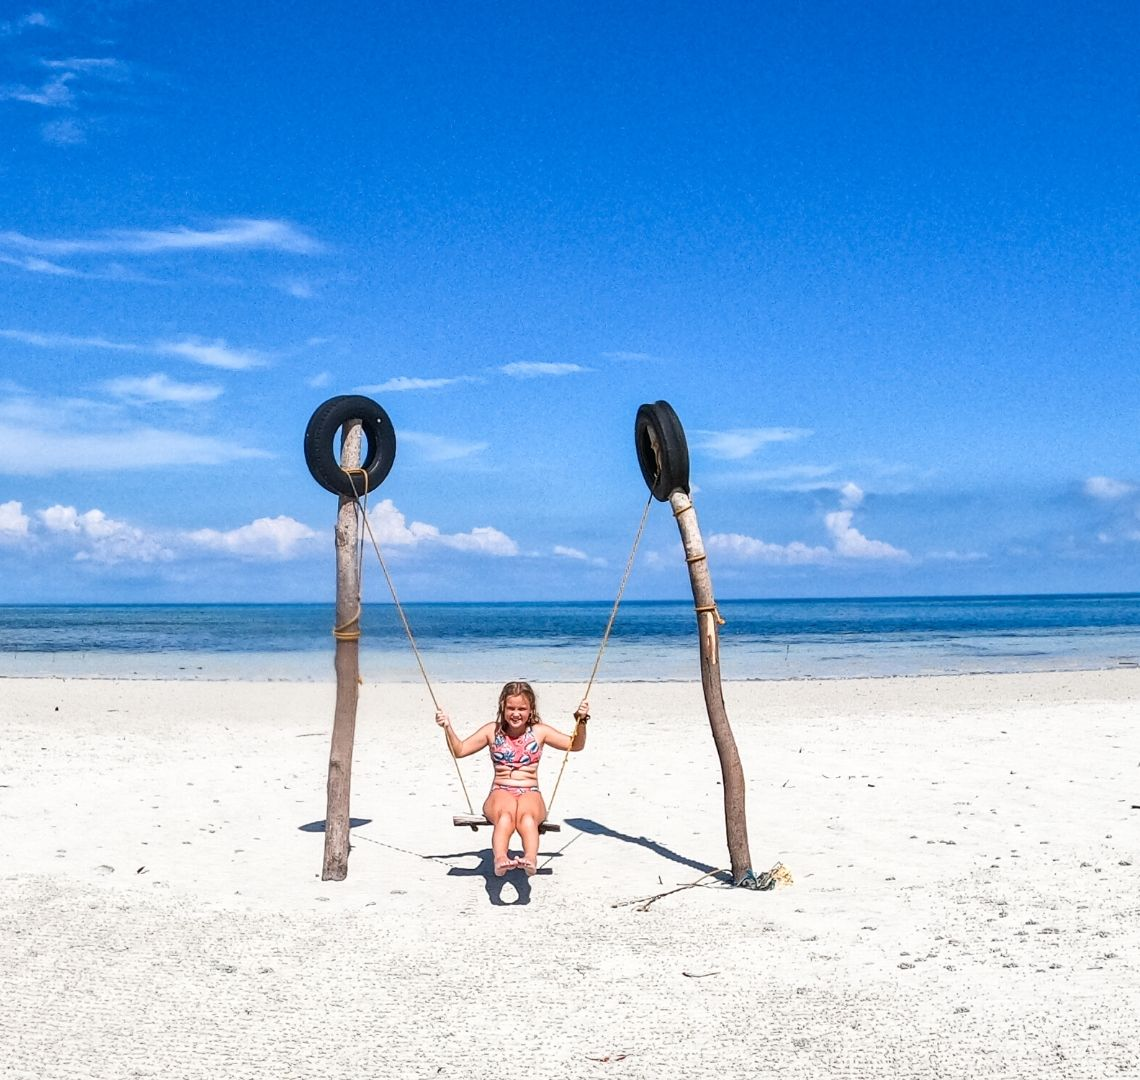 Siquijor - There is a vast expanse of white sand and beyond is deep blue sea and bright blue sky with just a few wispy clouds up high and some fluffier ones on the horizon, A little girl sits on.a swing in the centre of the photo - it is strung up between two large wooden poles with black tyres fixed to the top